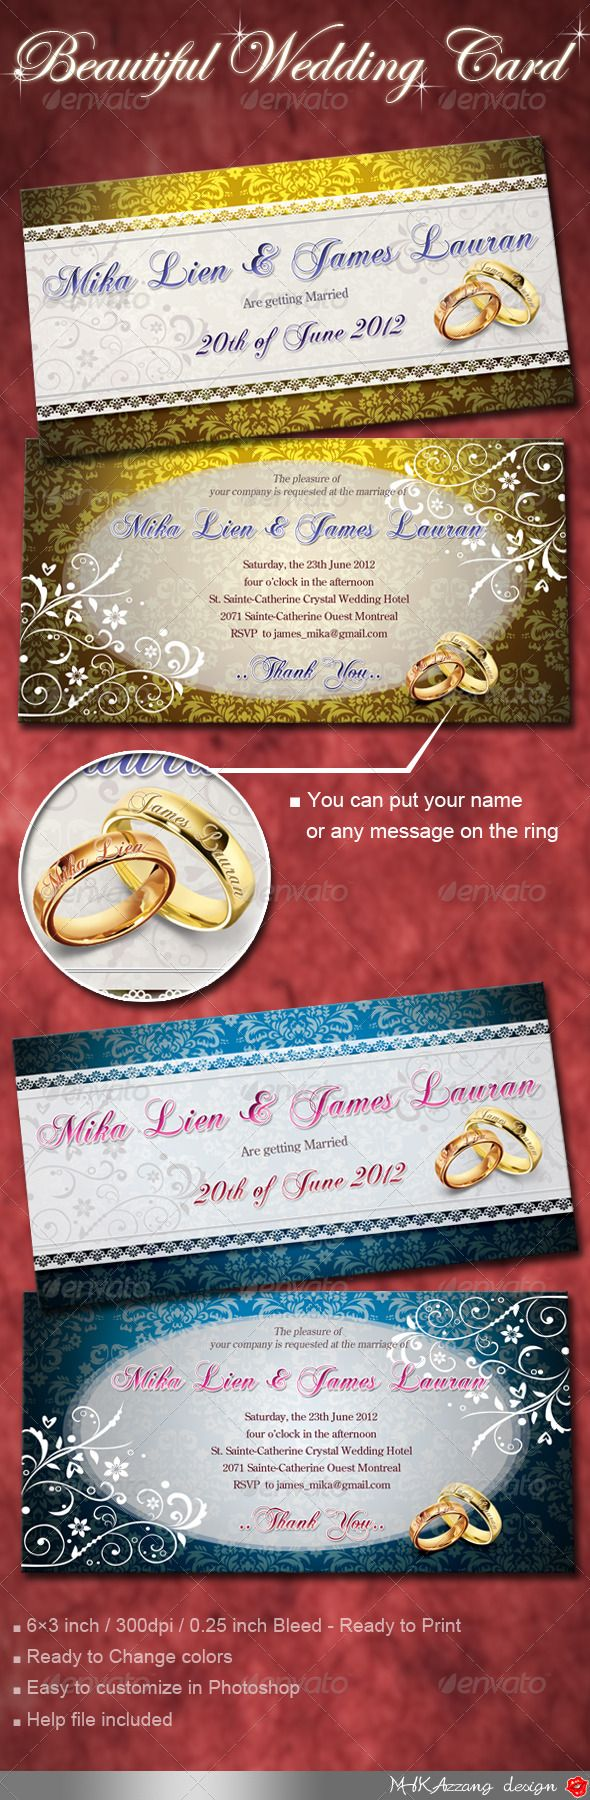 146 best # Wedding Invitation Card Templates Designs images on ...